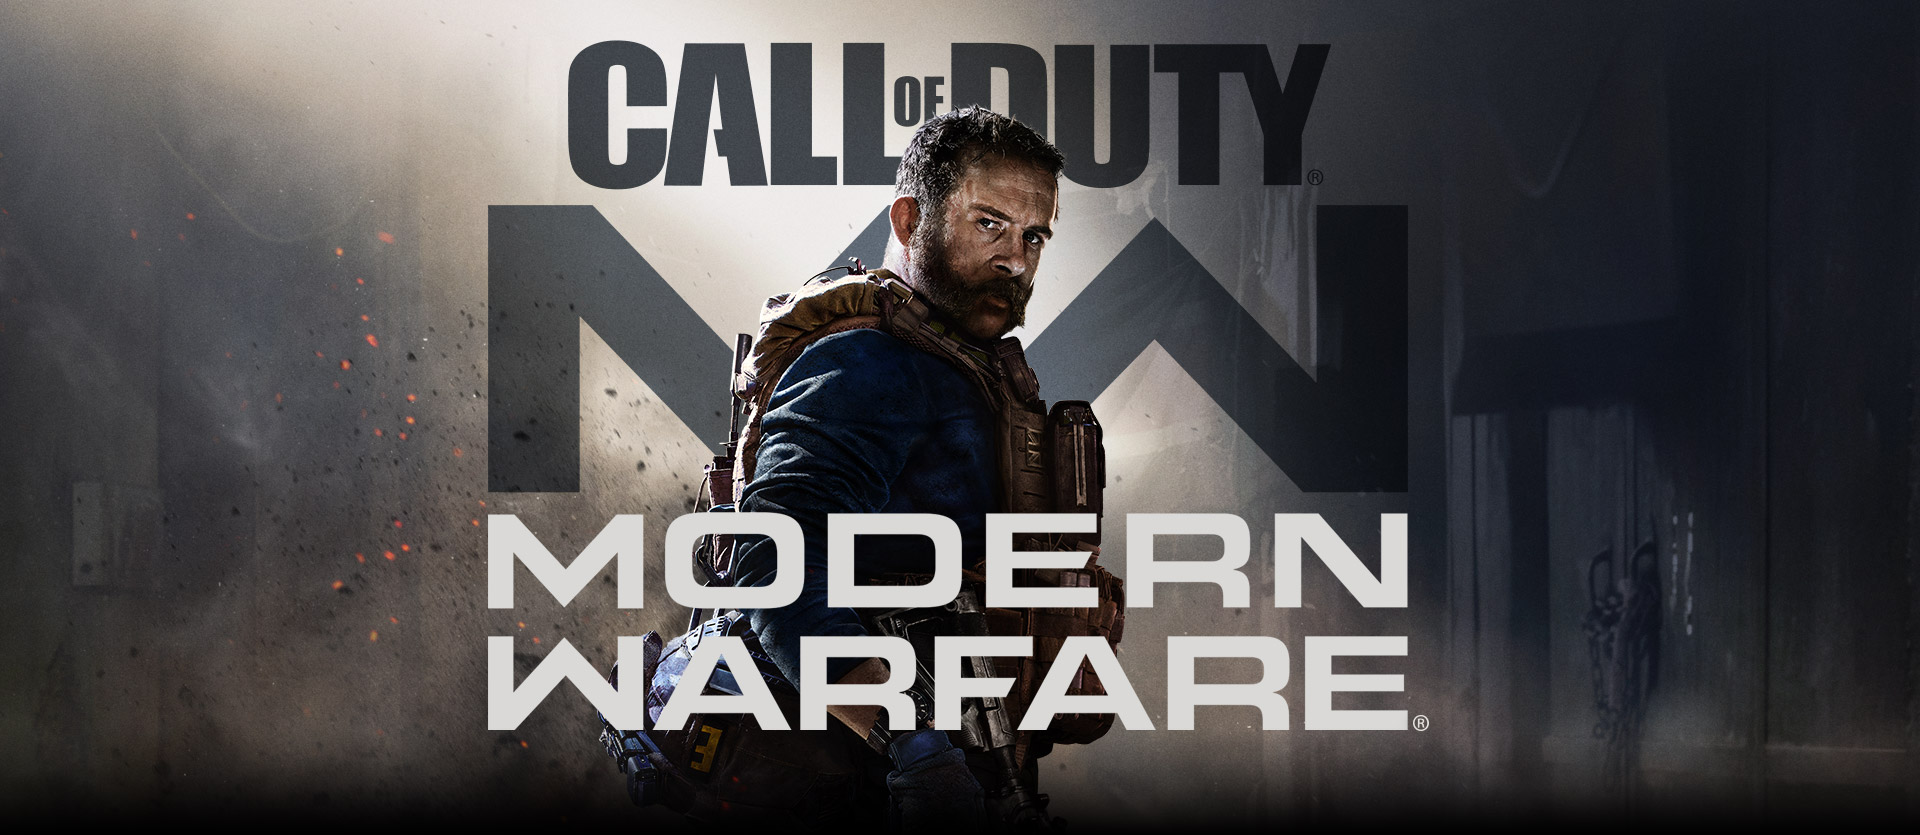 Call of Duty: Modern Warfare-logo met het personage Captain Price in het blauw met militair vest